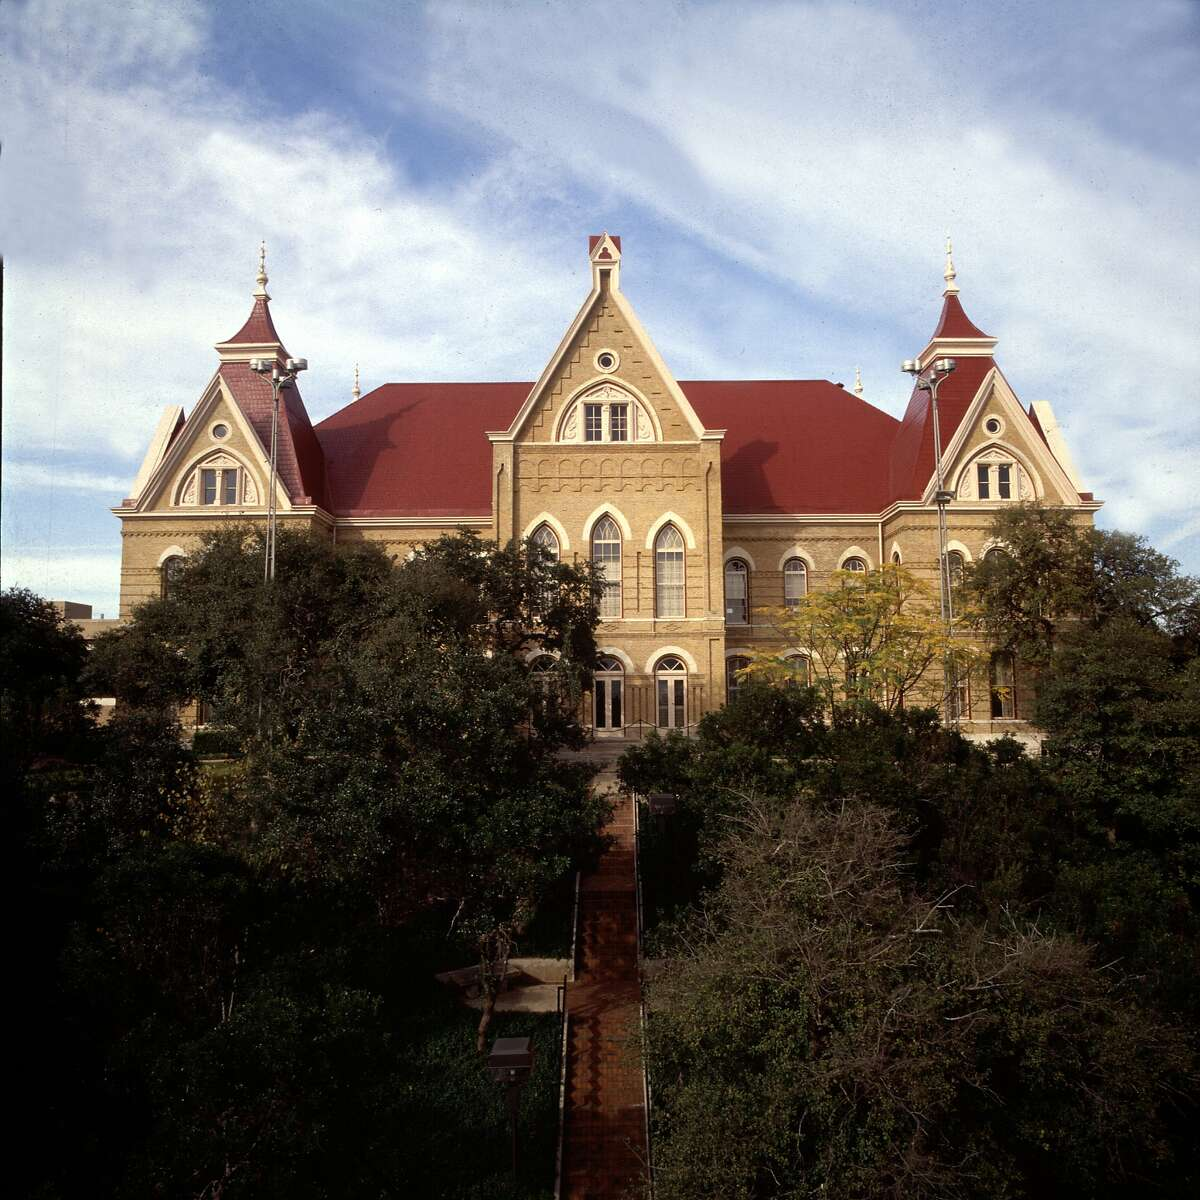 10. Texas State University The 33,531 undergraduates at Texas State University, excluding those taking only remote classes, make up 52.6 percent of San Marcos's population.  The school, currently operating a hybrid model, has reported 164 COVID-19 cases since classes started on Aug. 24.